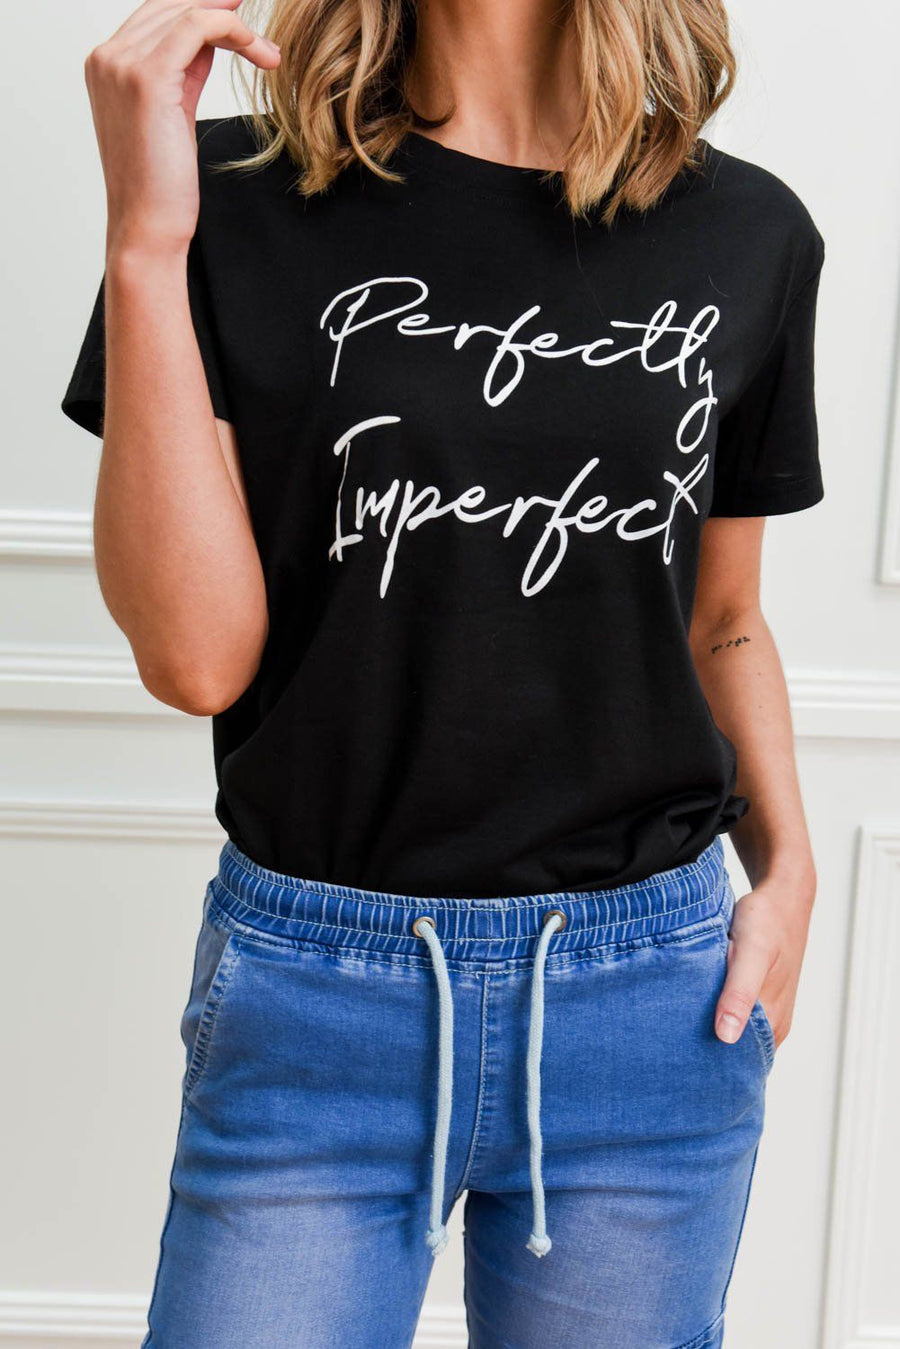 Perfectly Imperfect Tee | Black Tee Gray.Label